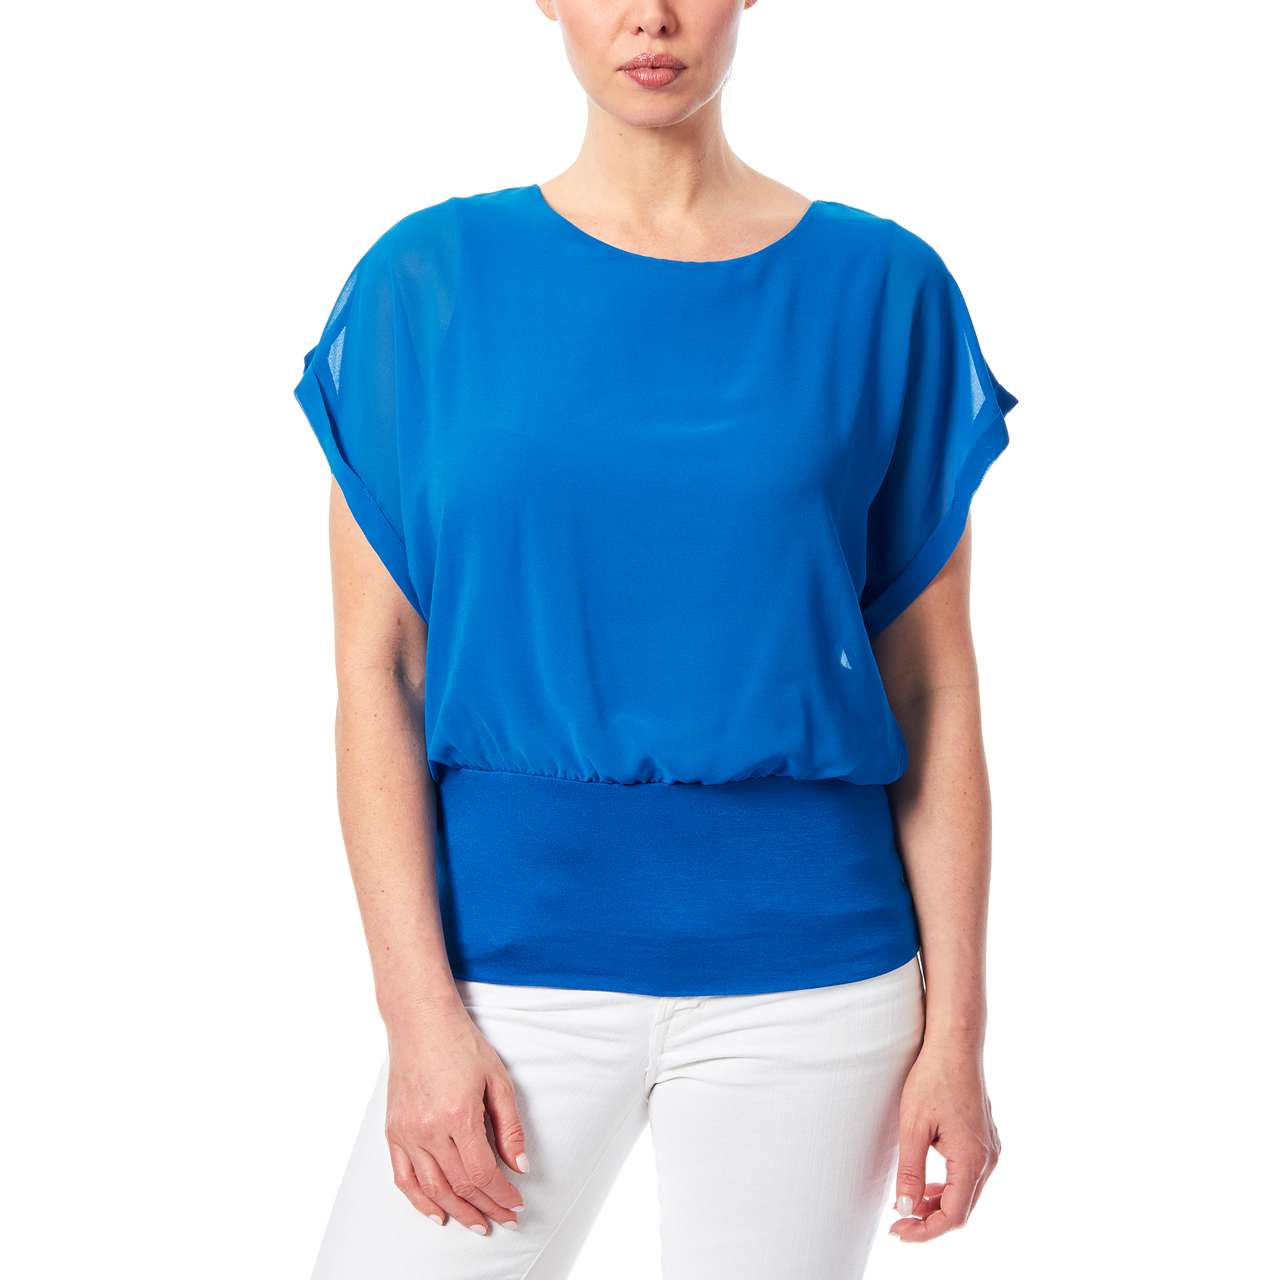 Dolman Sleeve Chiffon Top With Knit Banded Bottom In Royal Blue